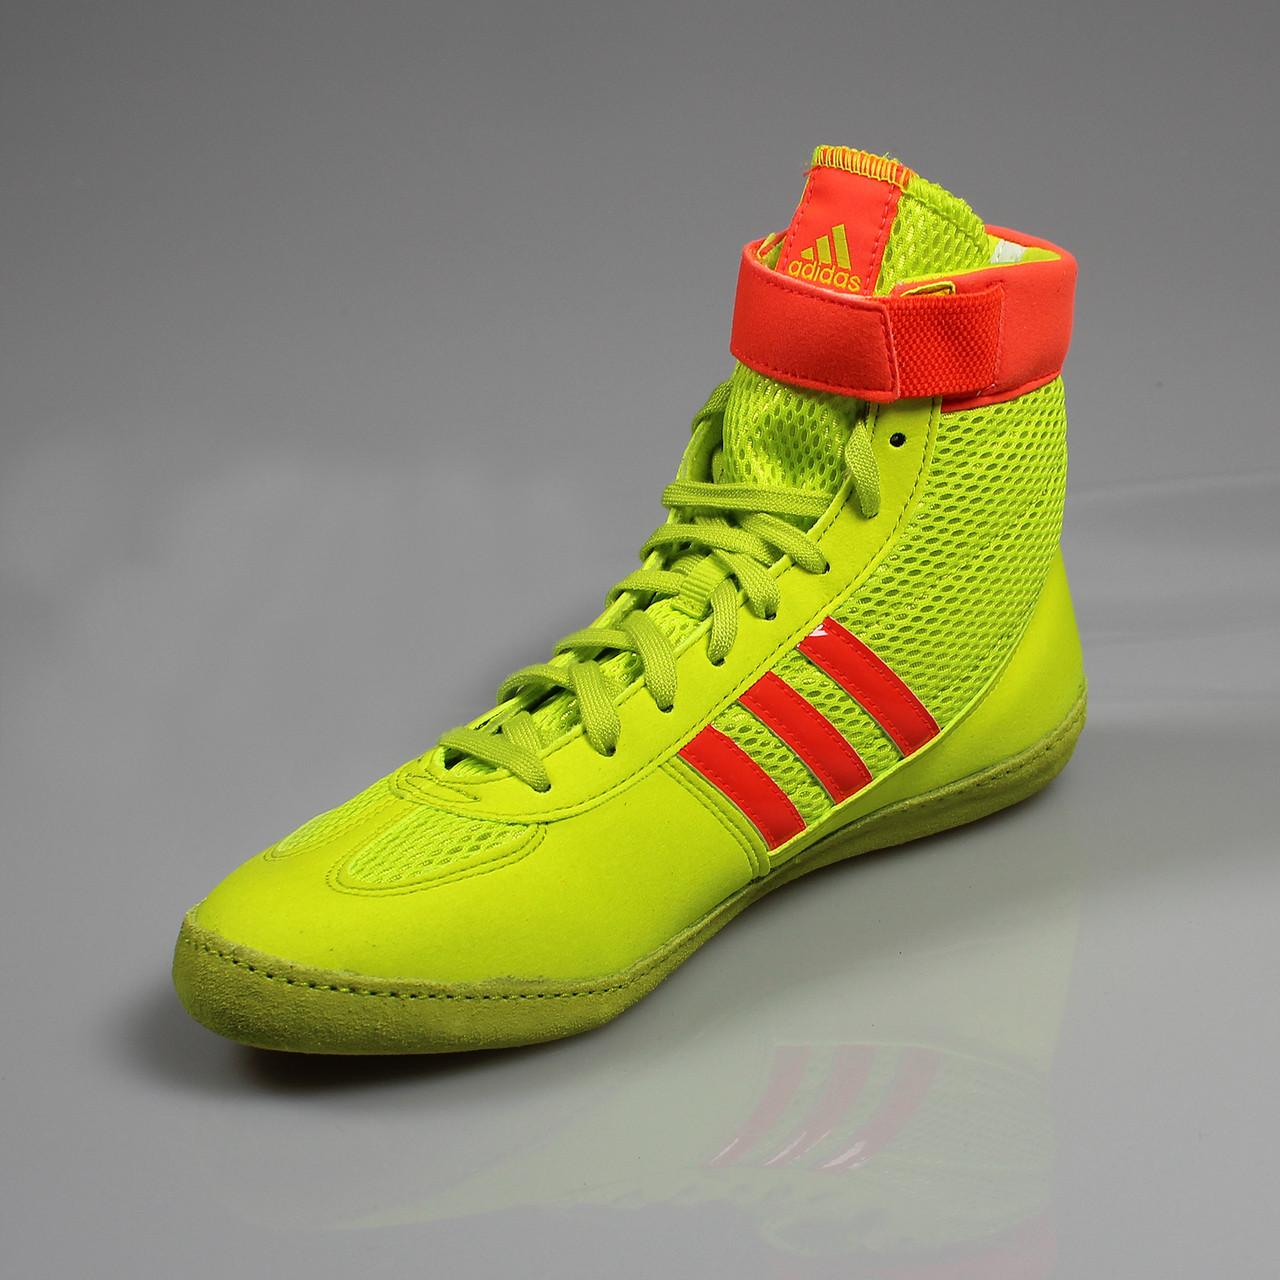 9a0d71a8441 ... Adidas Combat Speed 4 Senior Wrestling Shoes B40609 - Yellow